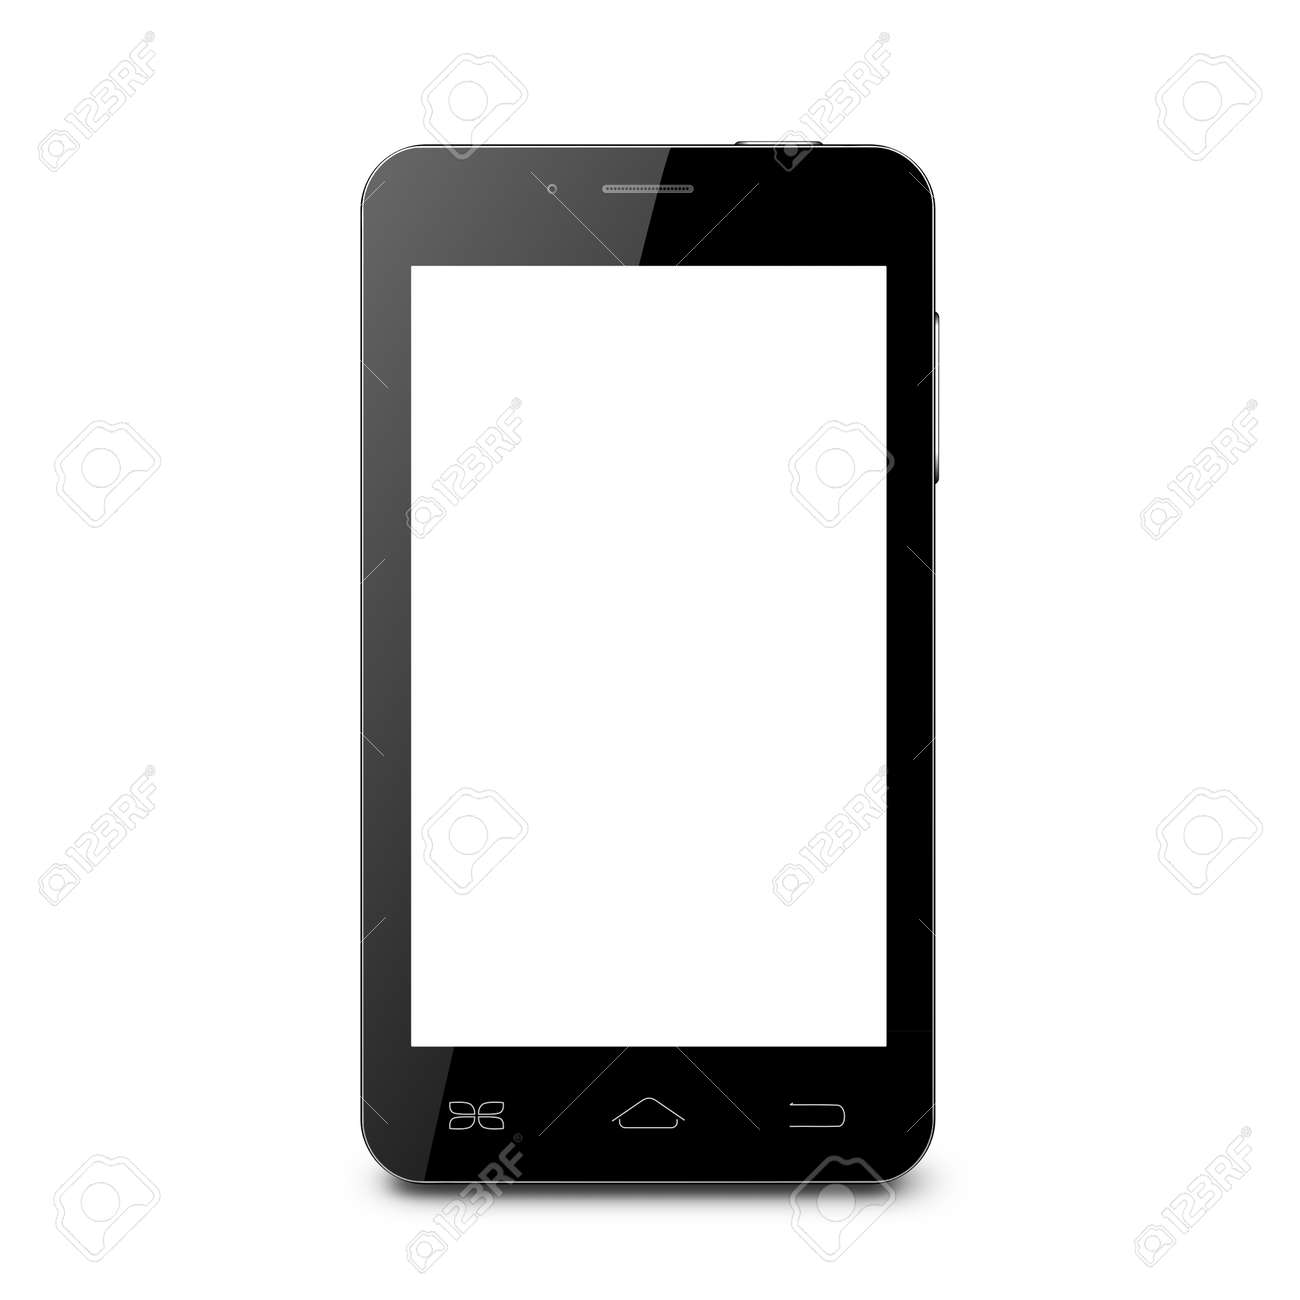 Black Mobile Phone With Blank Screen On A White Background Stock